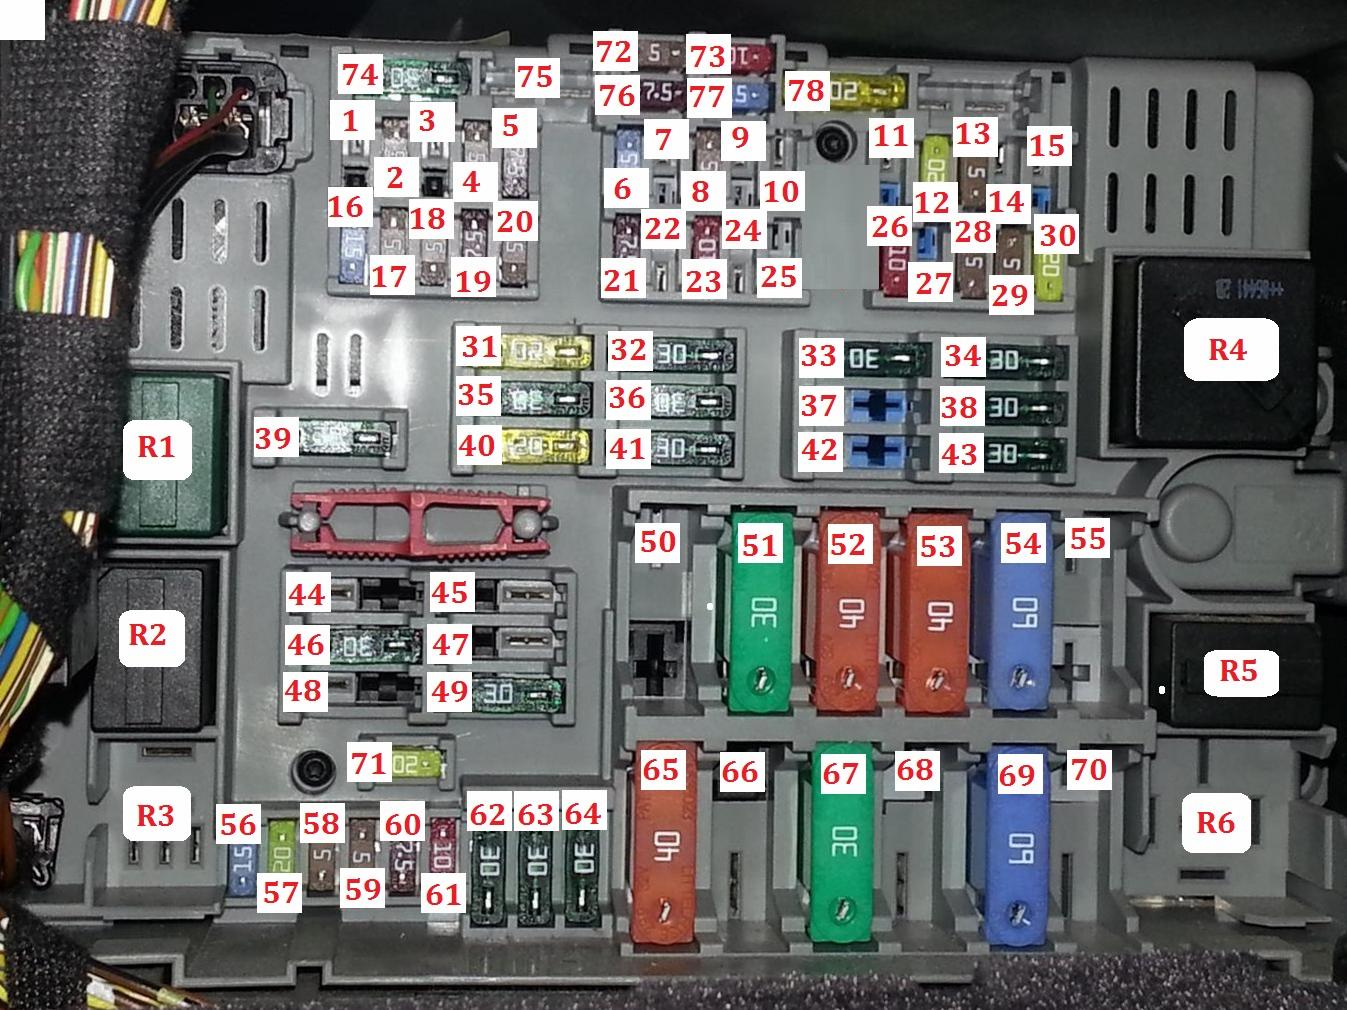 hight resolution of fuse and relay box diagram bmw e90 1984 corvette fuse box location 2005 mazda 3 fuse